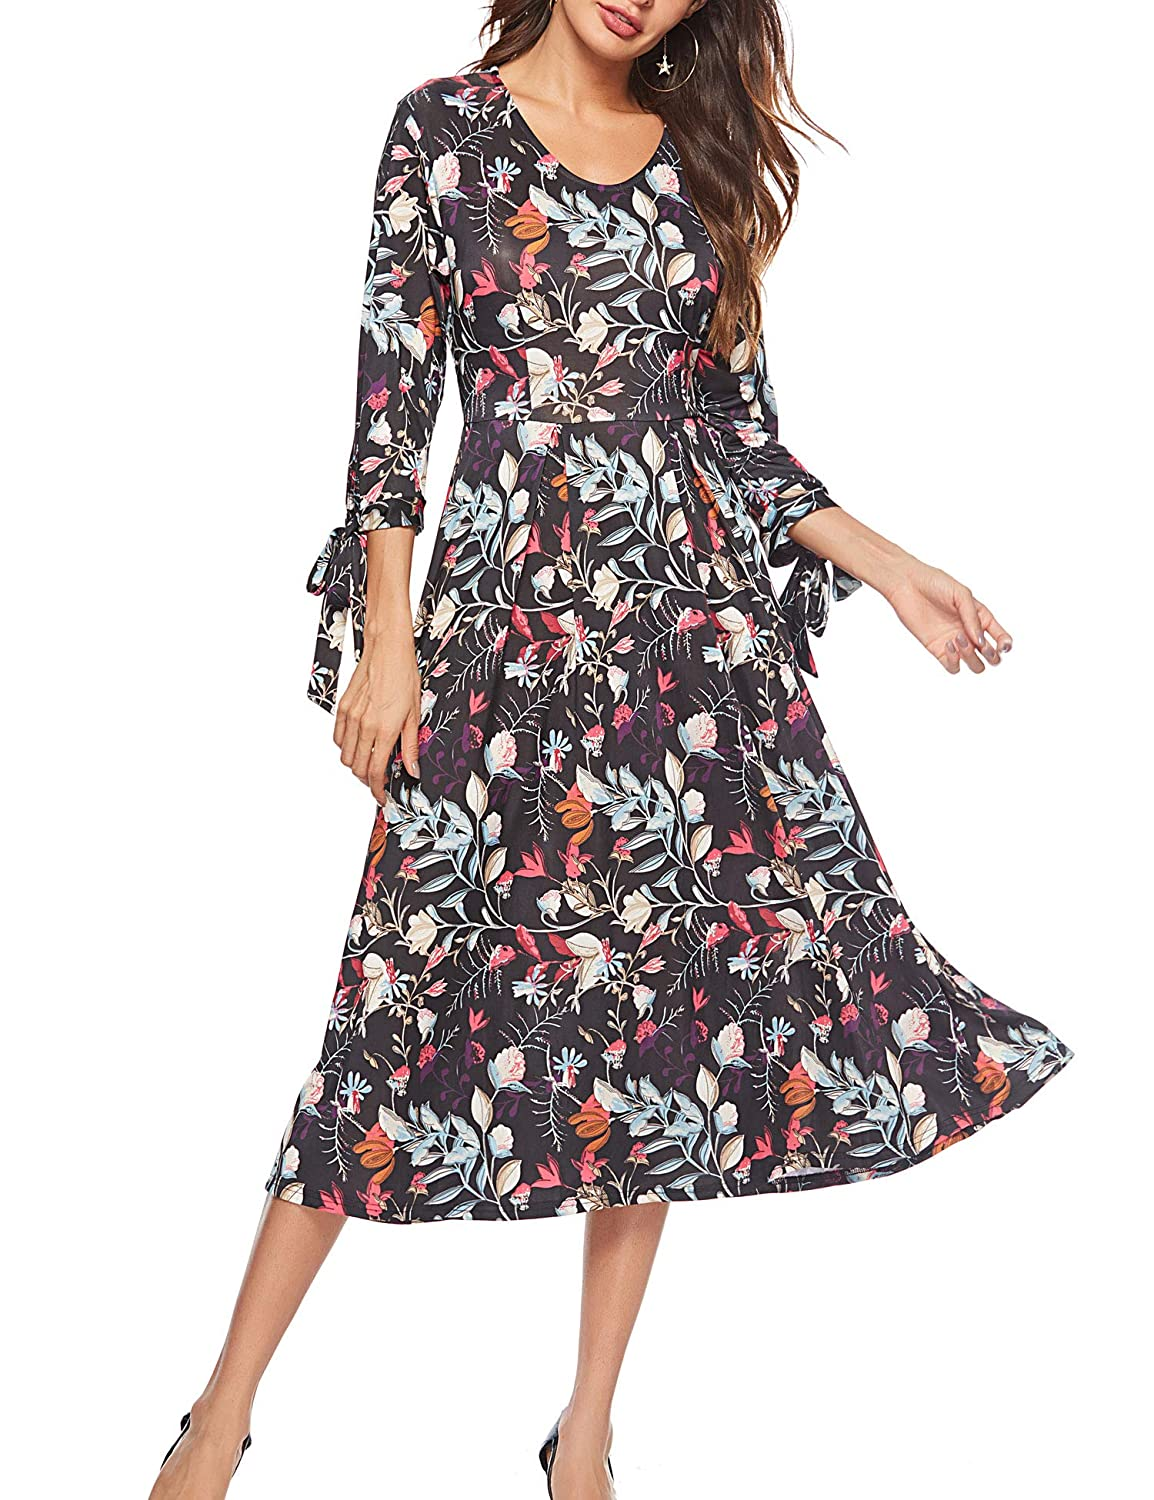 Black WISREMT Womens Floral Print 3 4 Sleeve A Line Casual Swing Midi Dress